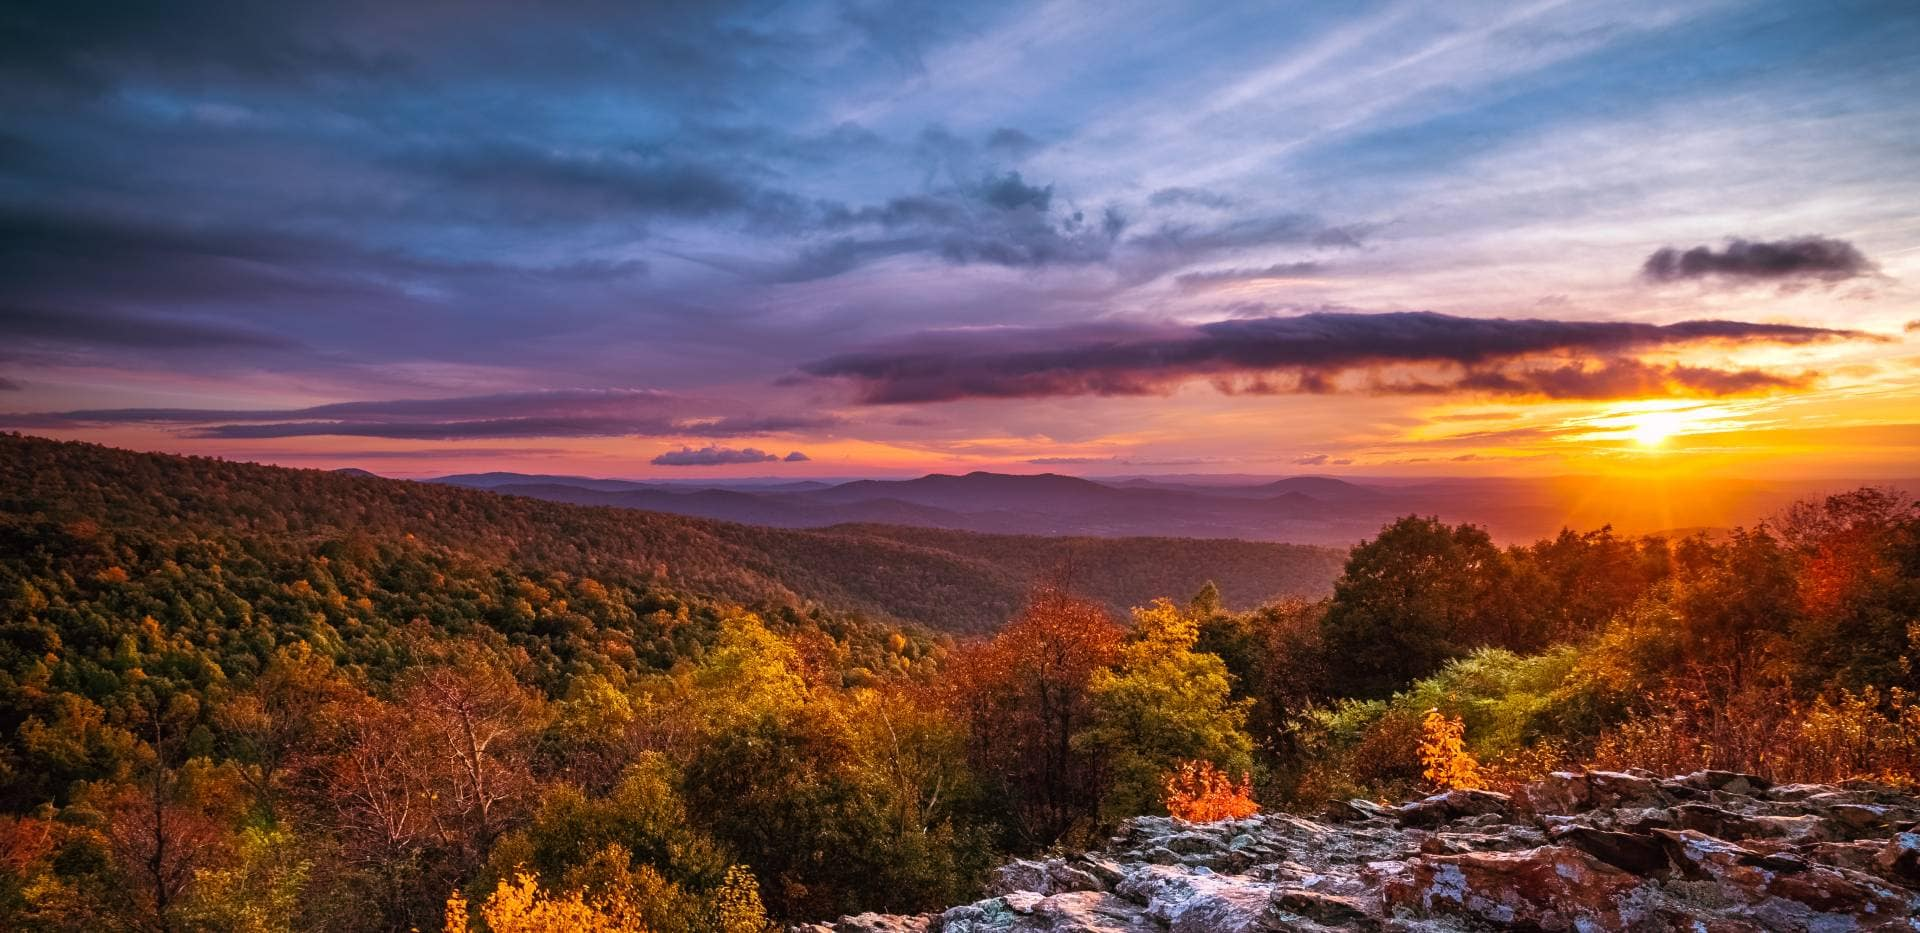 Planning a trip to Shenandoah National Park